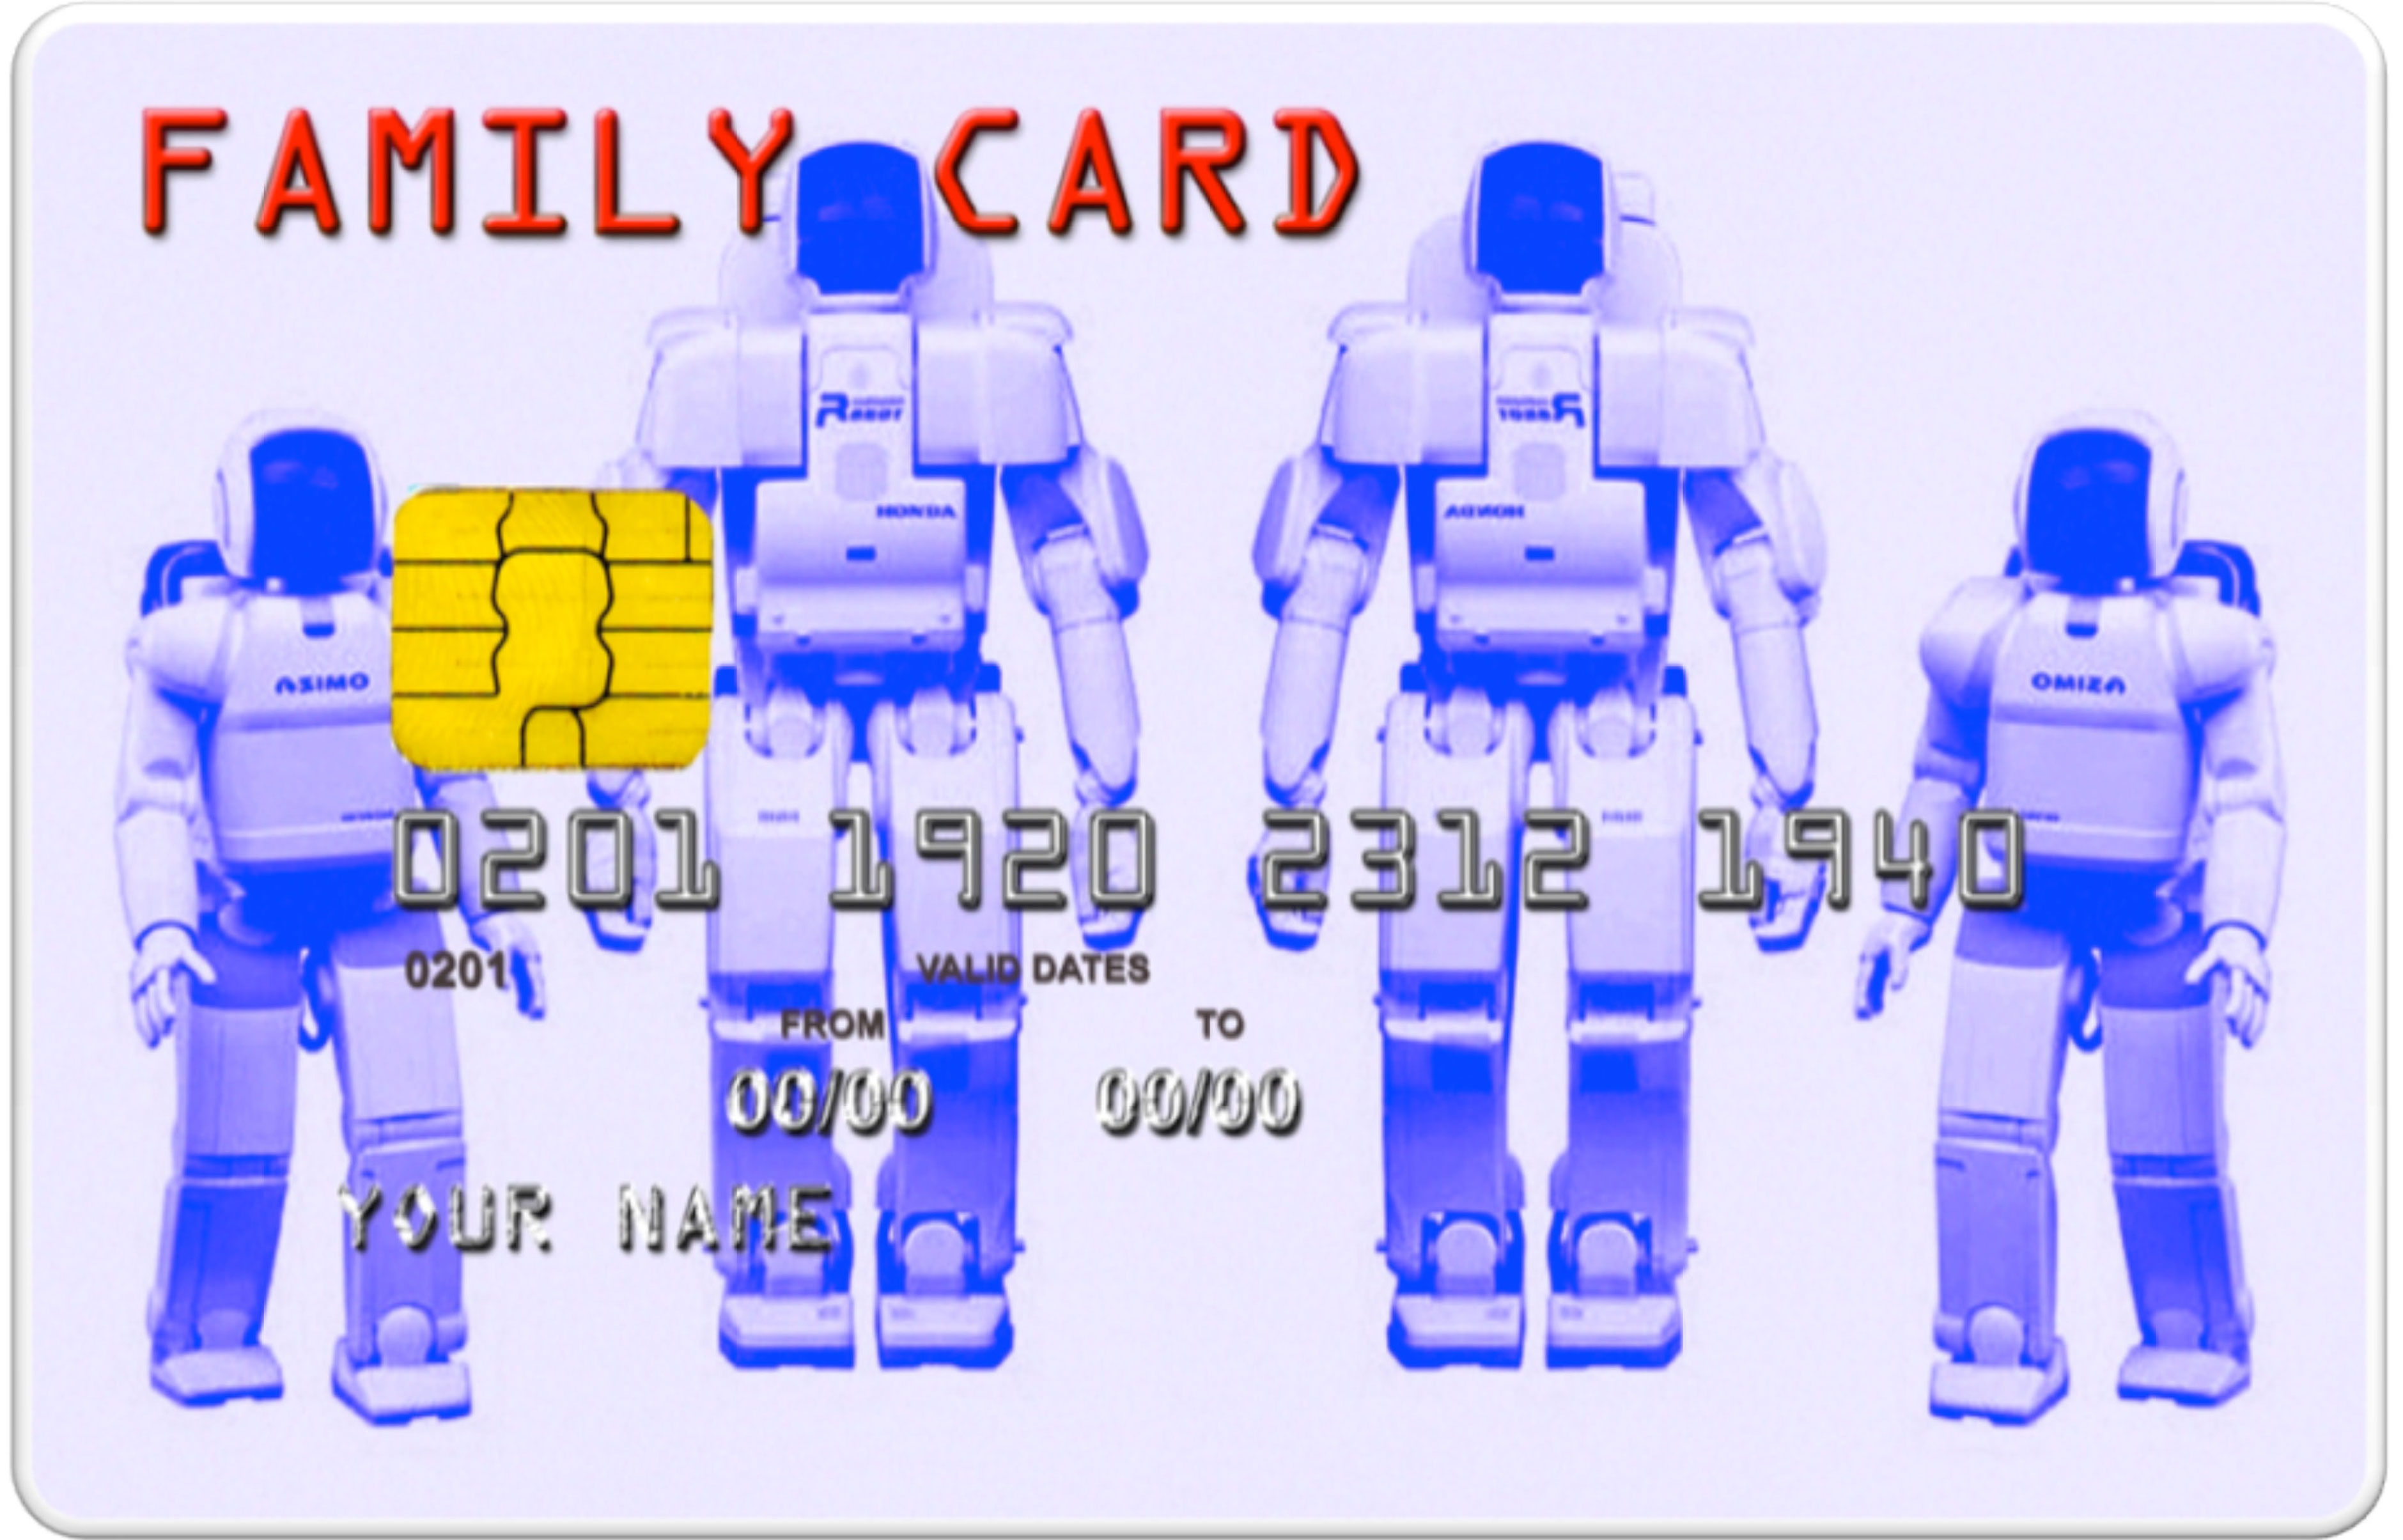 FAMIL CARD